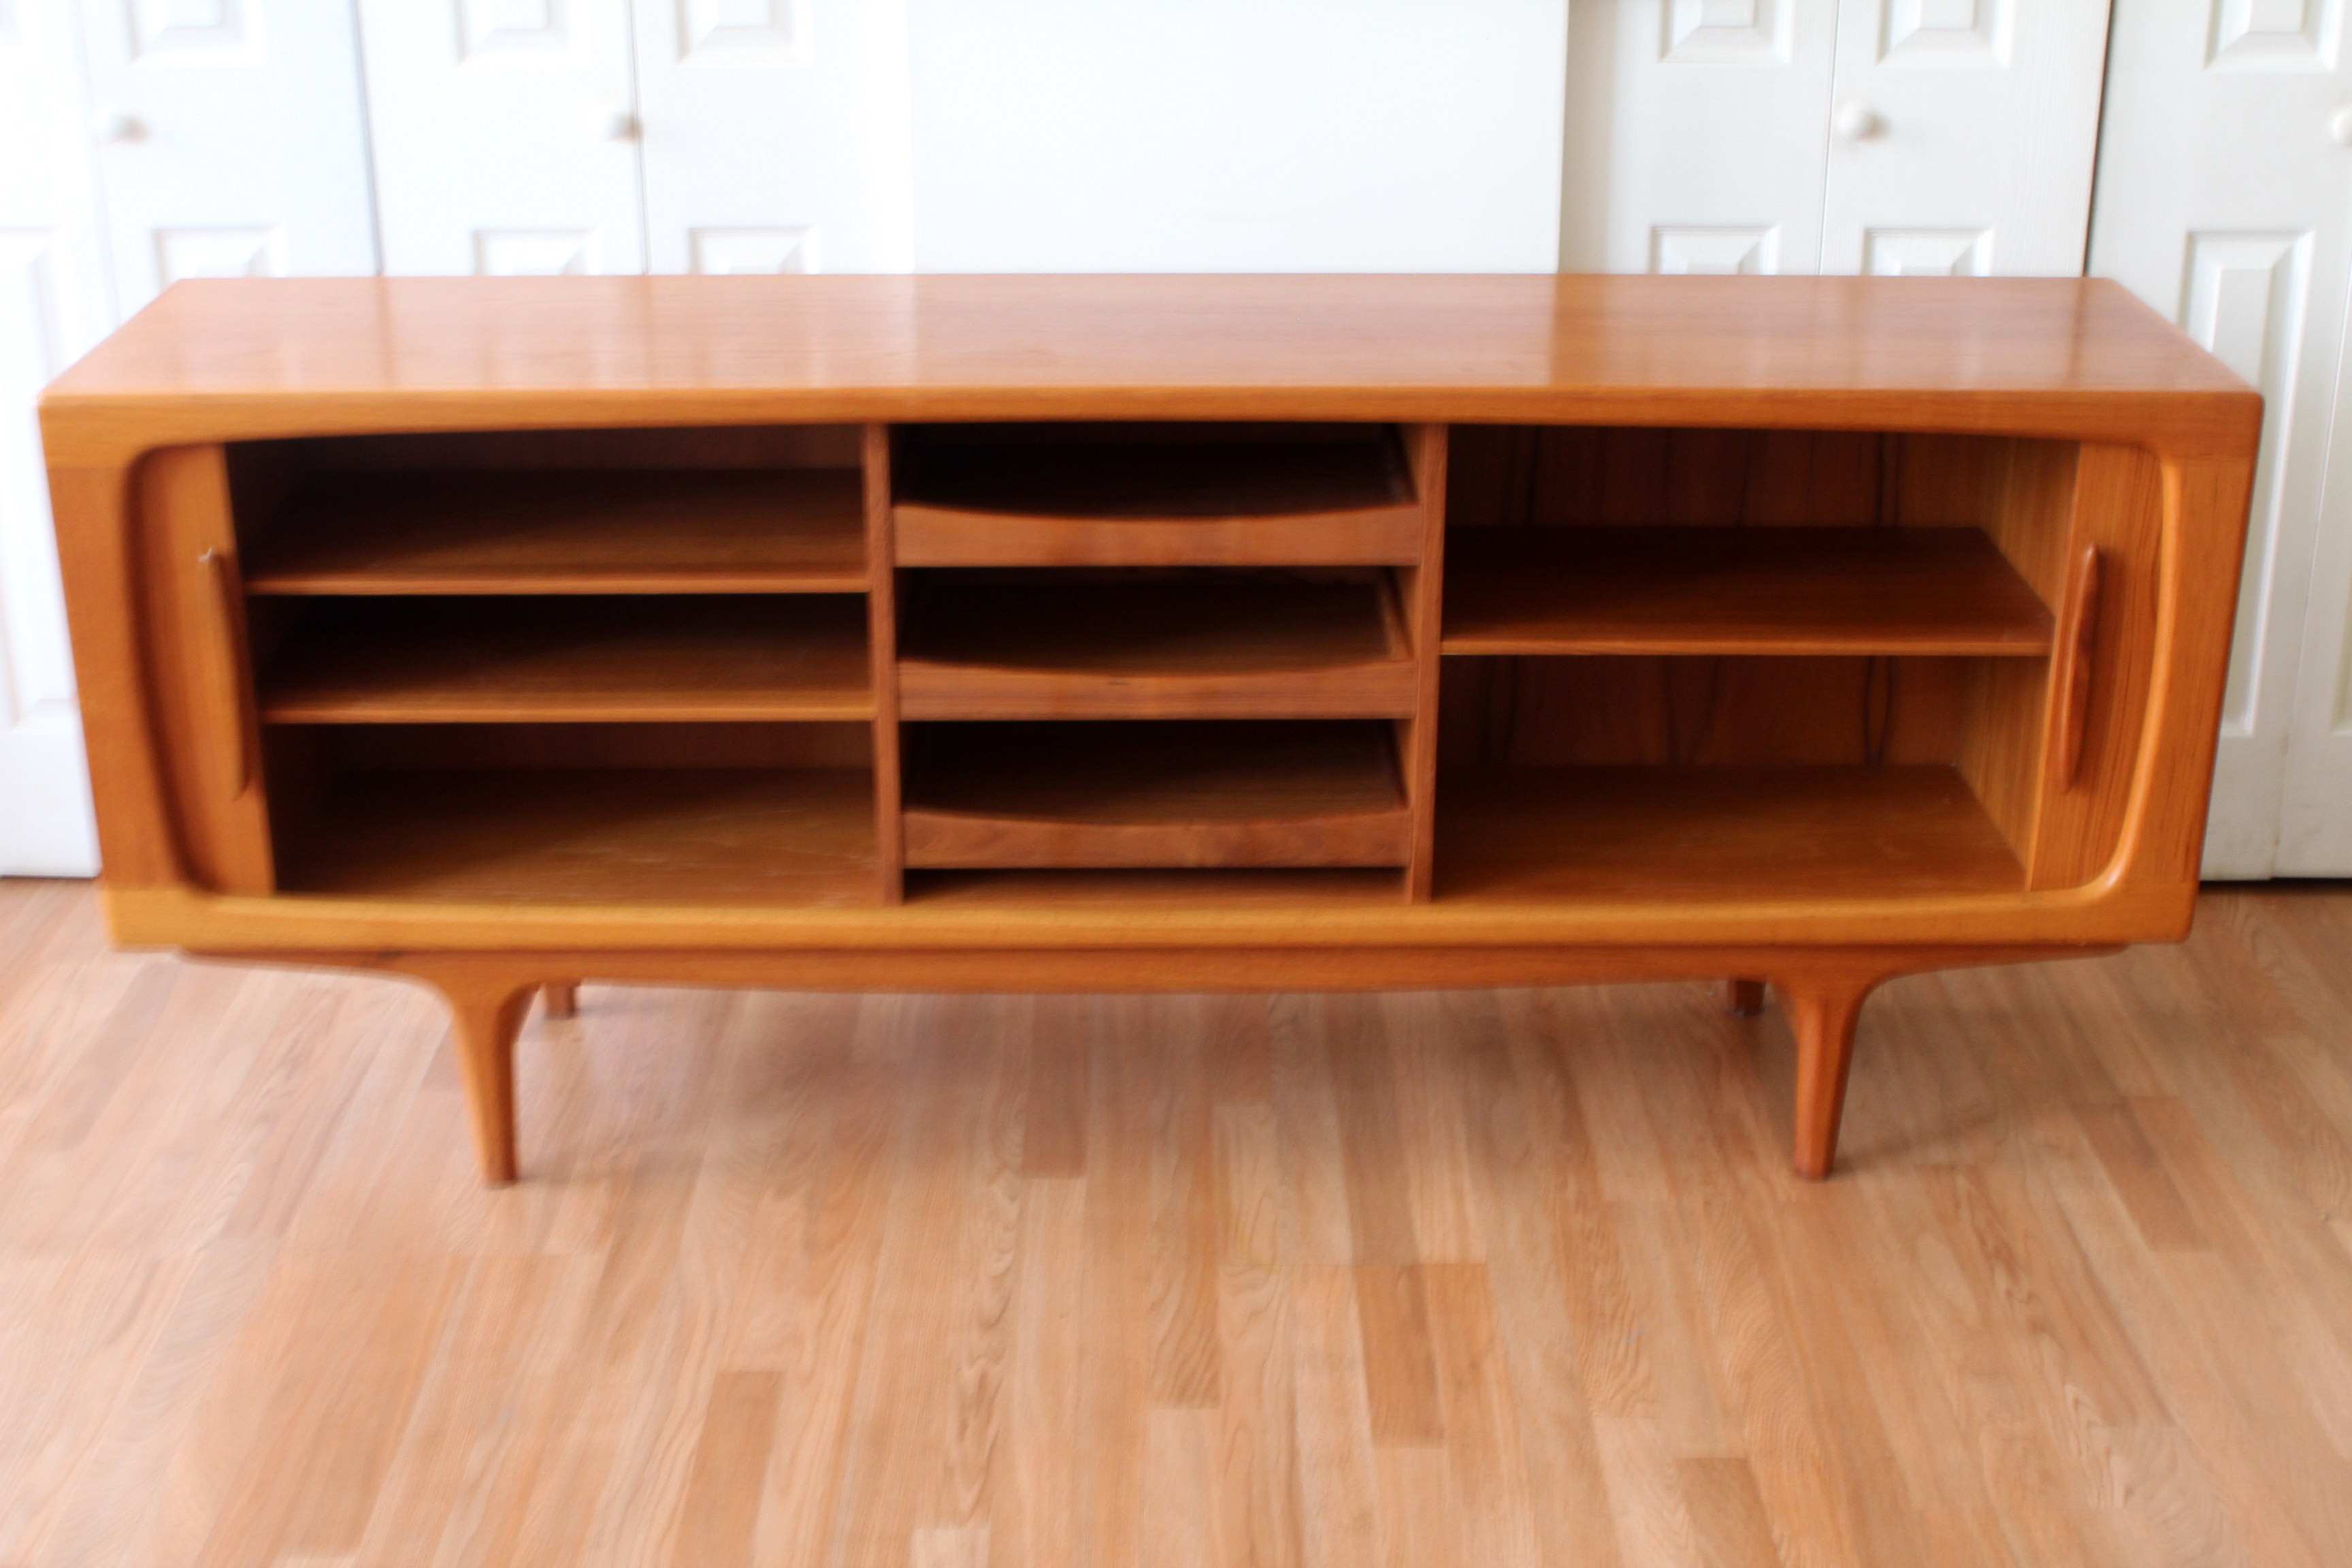 teak credenza tambour doors cfc johannes andersen an orange moon 1st dibs - First Dibs Home Decor